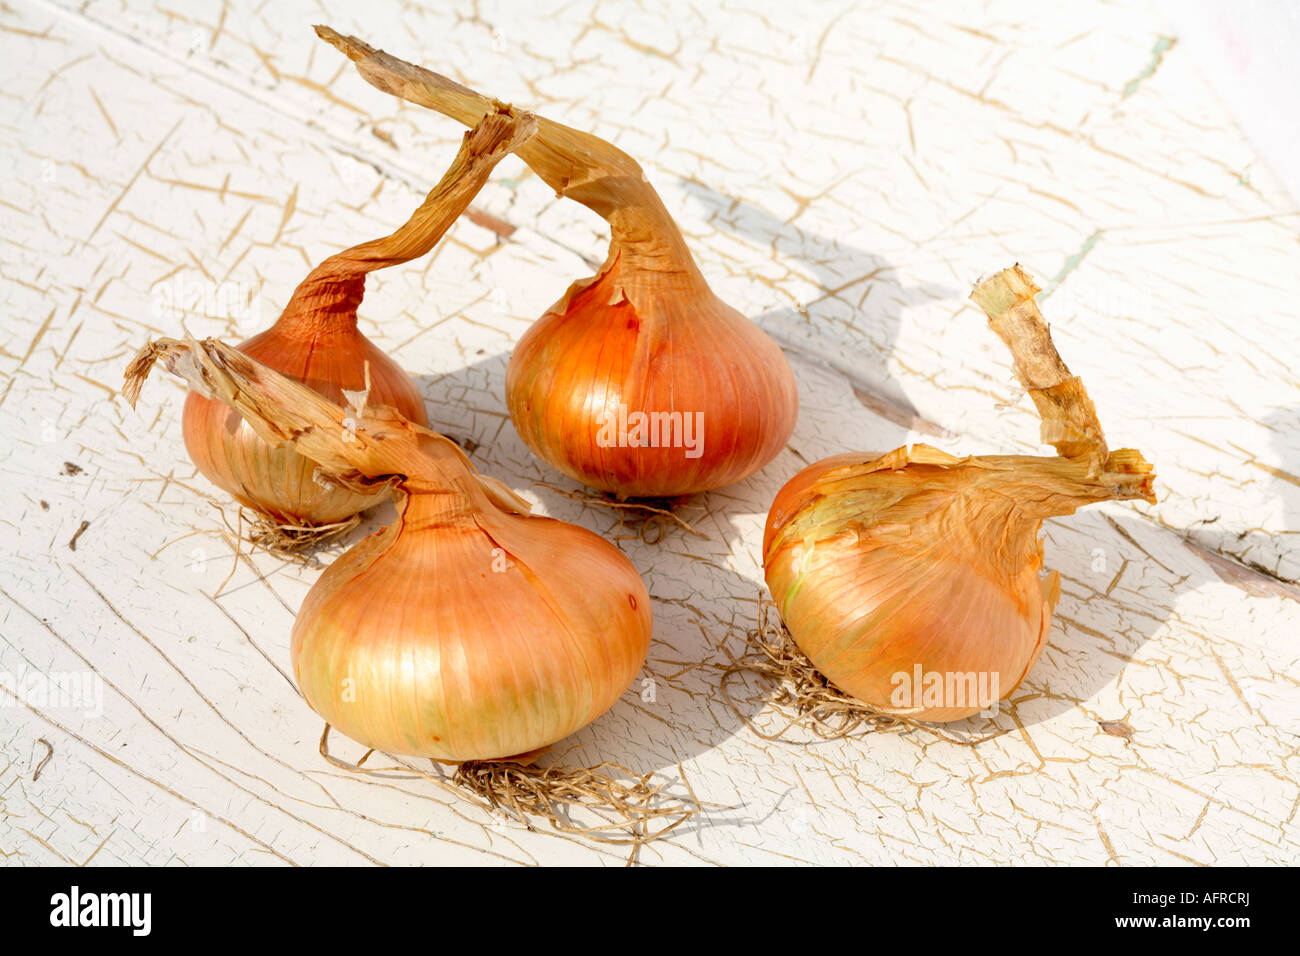 Four Onions Onion Stuttgarter variety flat onion outside - Stock Image